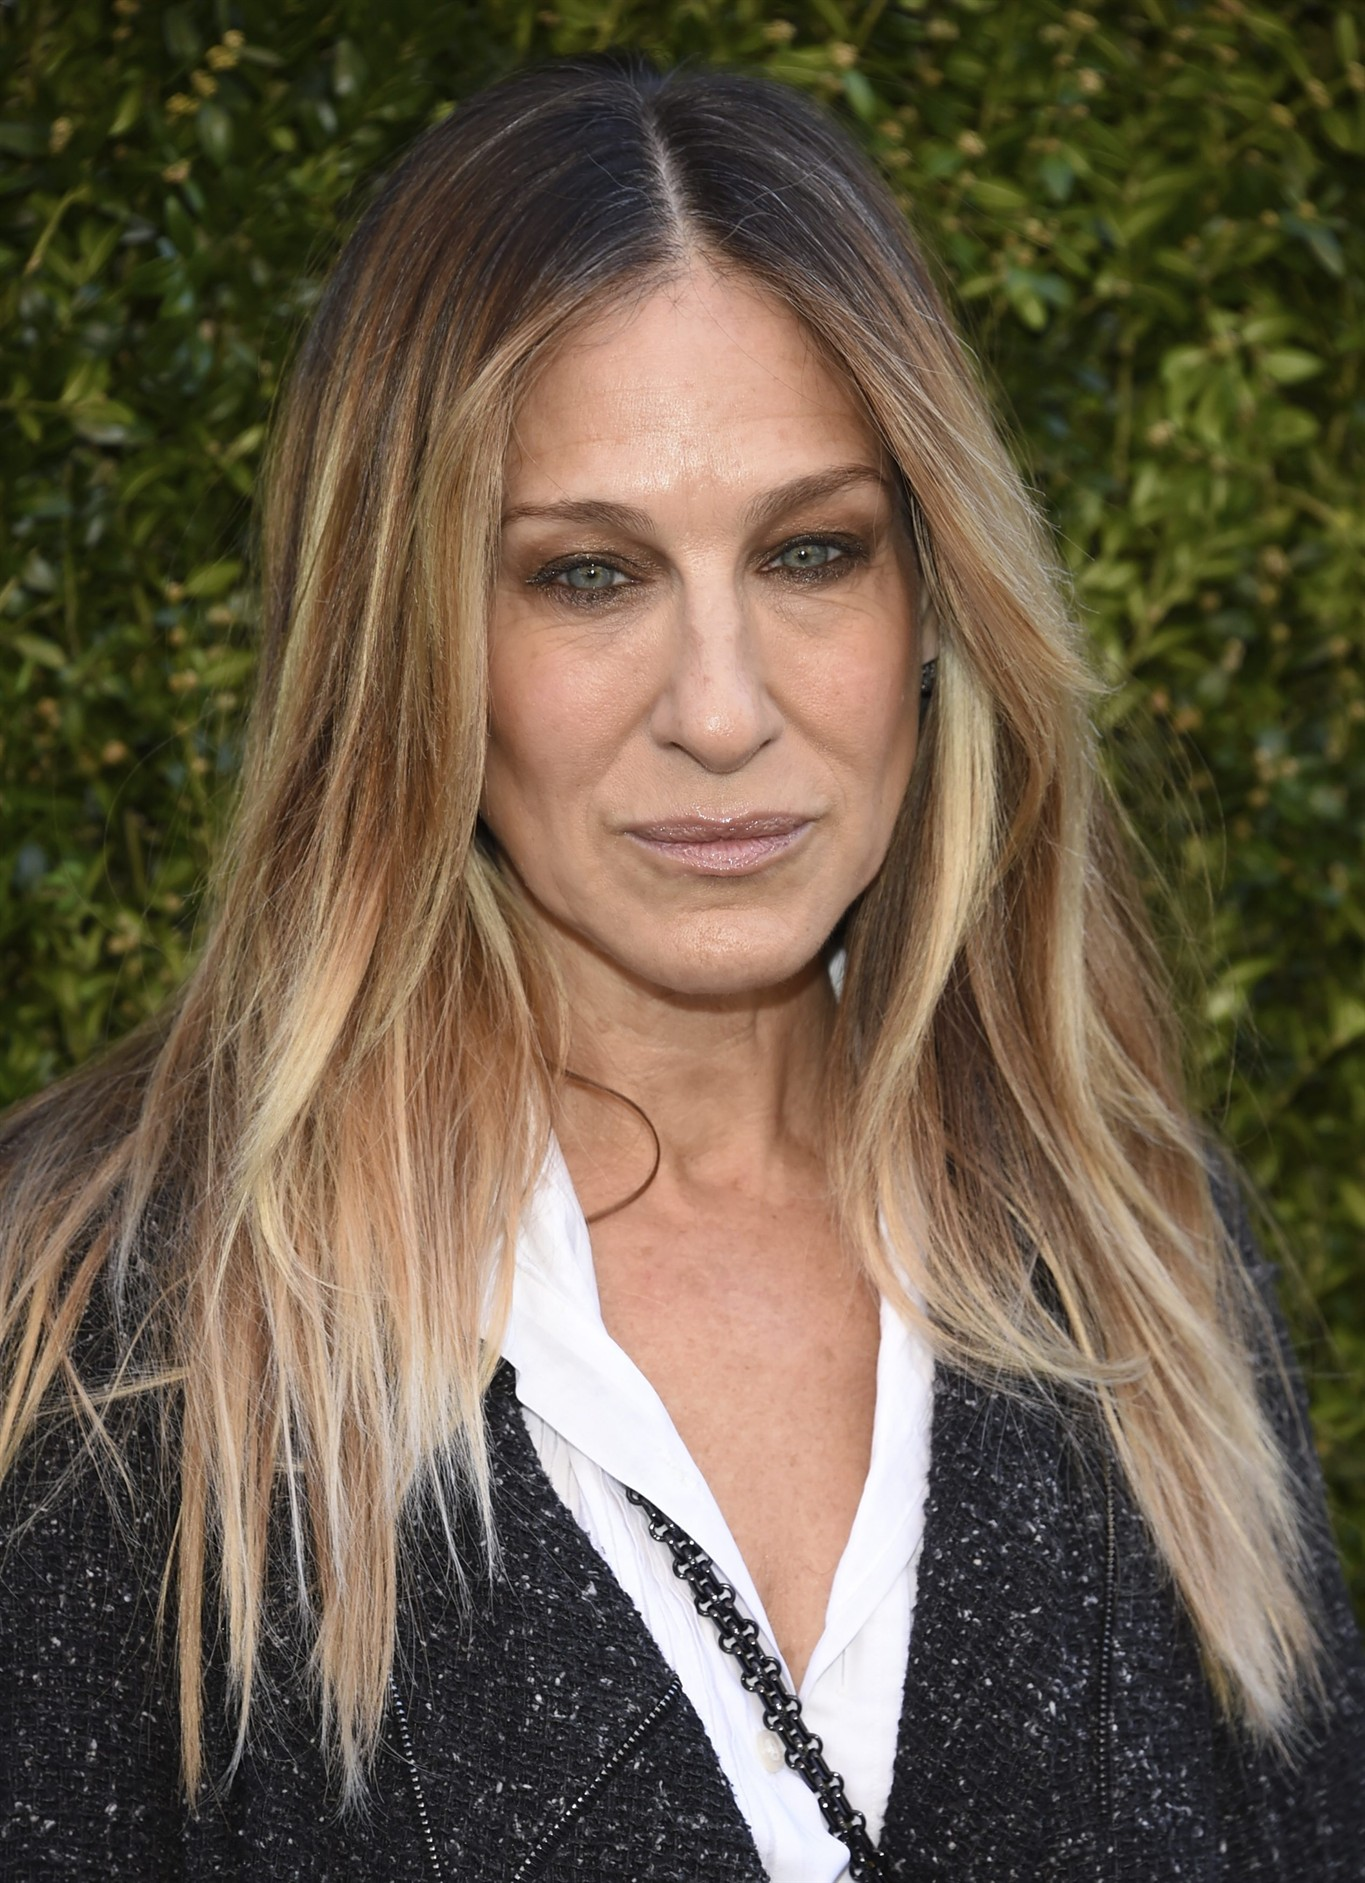 Actress Sarah Jessica Parker attends the 2018 Chanel ...